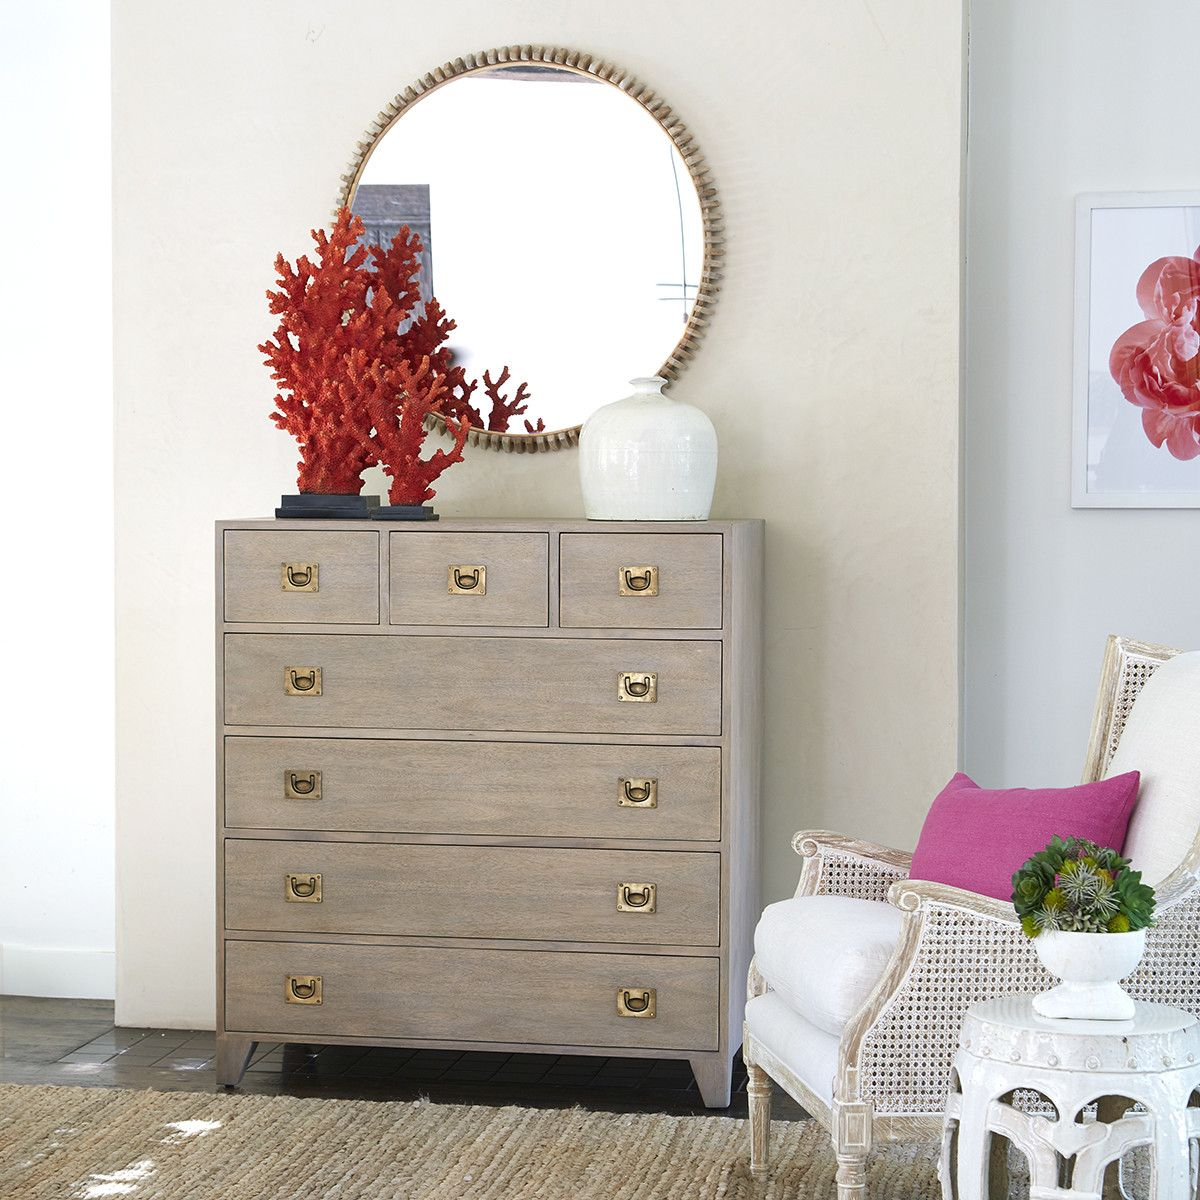 Https Www Wisteria Com Extra Tall Gray Wash Campaign Chest Productinfo T21329 Round Mirrors Types Of Furniture Campaign Furniture